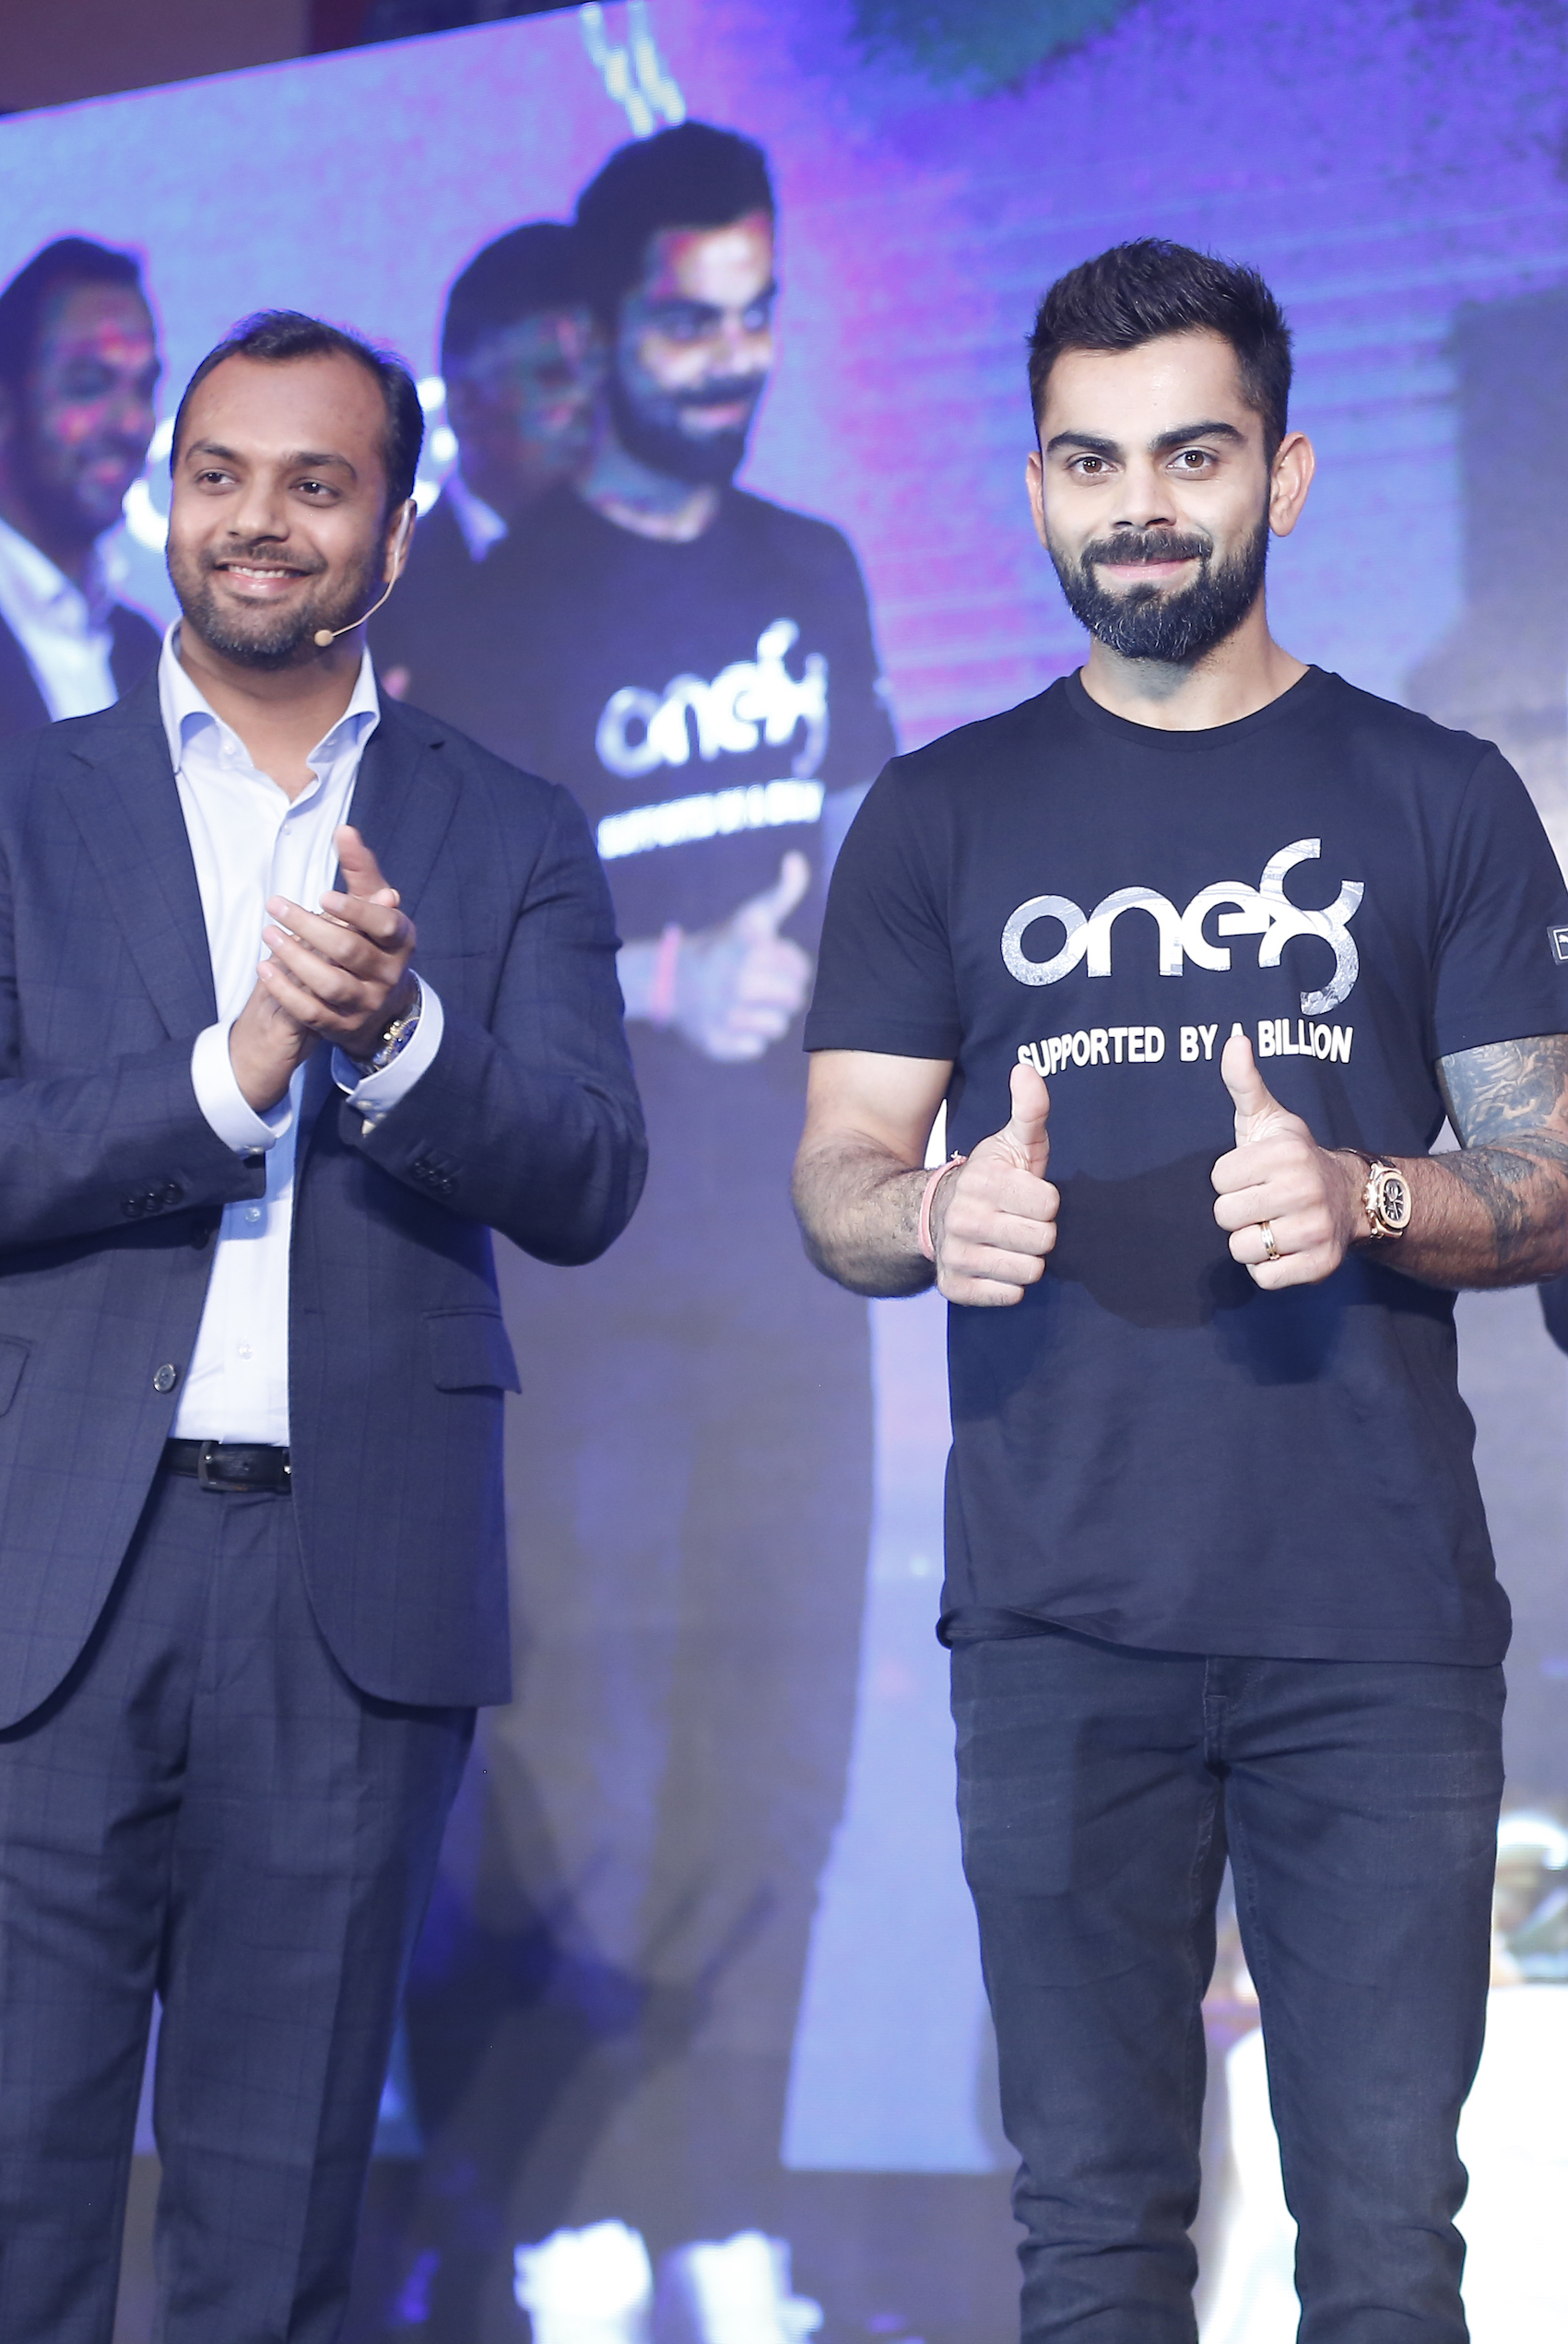 Did You Know? Virat Kohli Was in Dubai Yesterday for THIS Reason